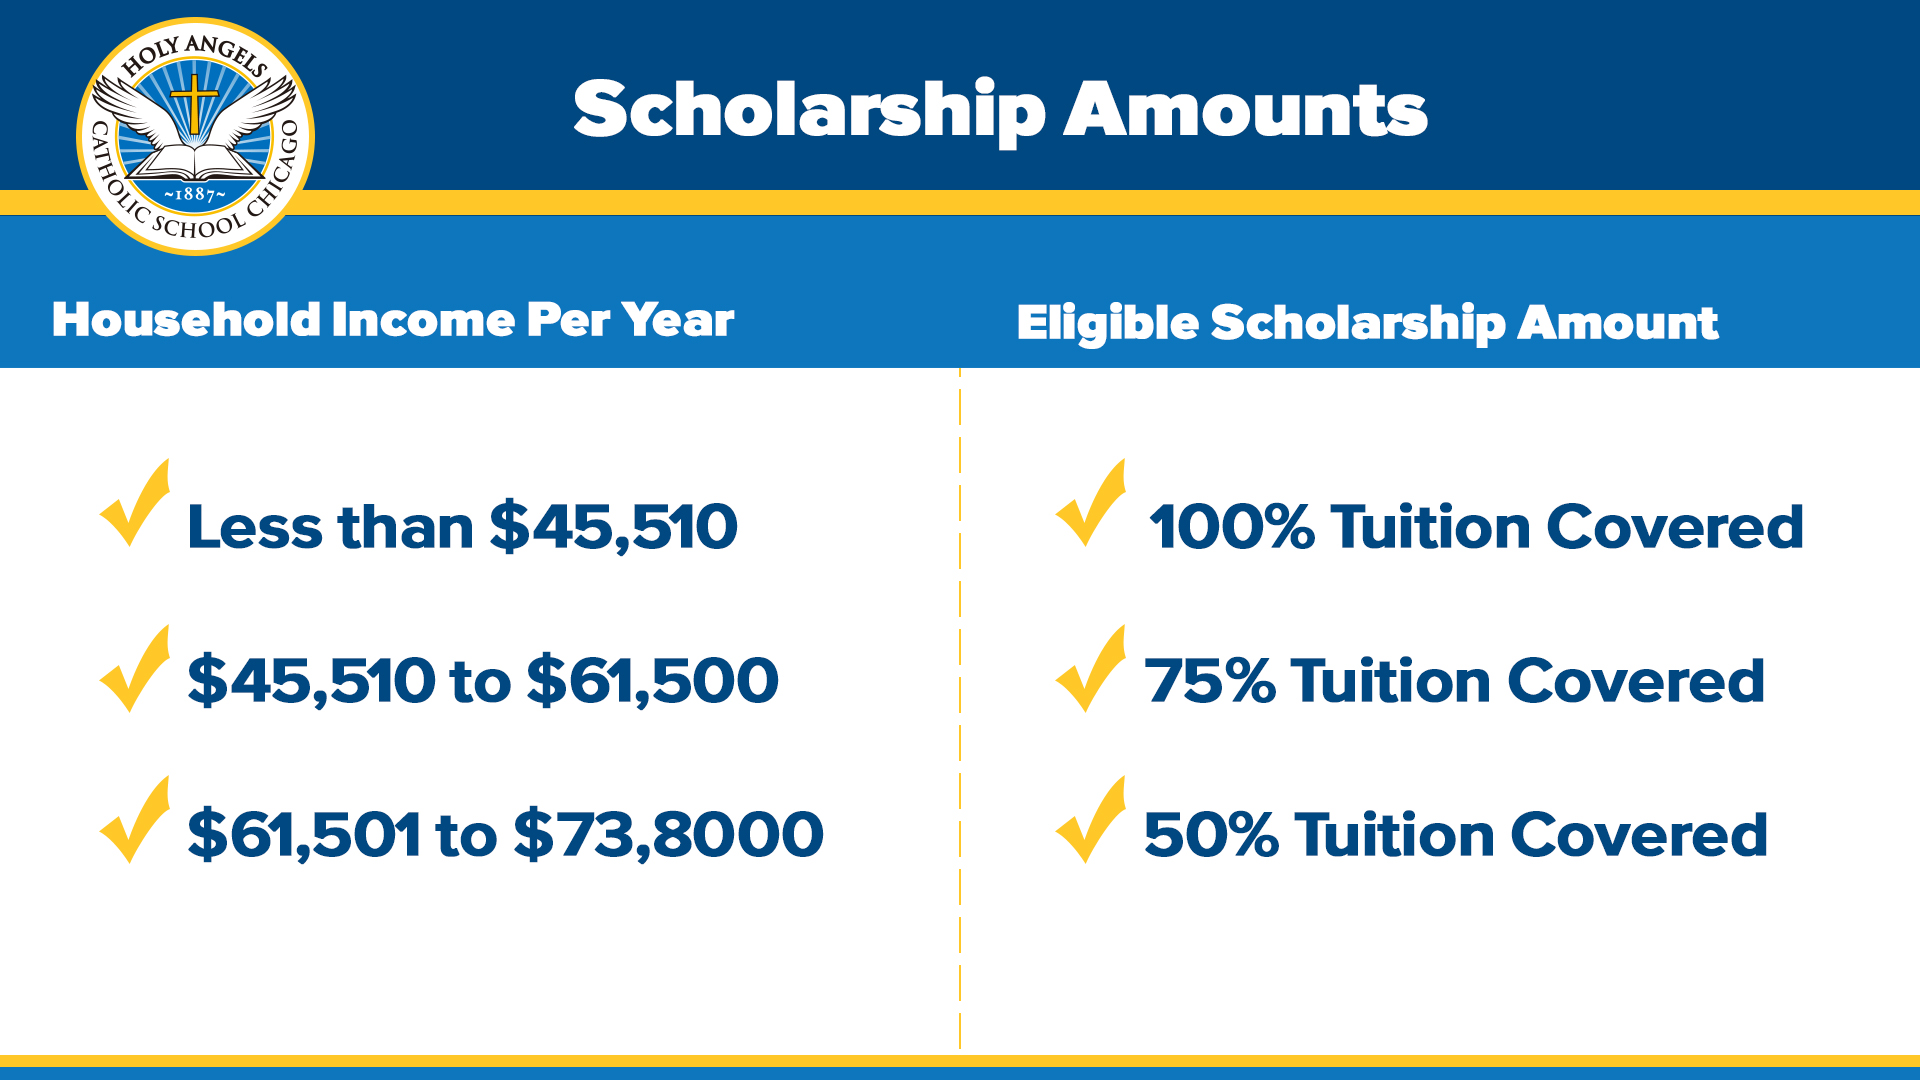 Come learn about the Tax Credit Scholarship Program - Applications open Wednesday, January 31st at 12:00 PM. You don't want to miss this opportunity.